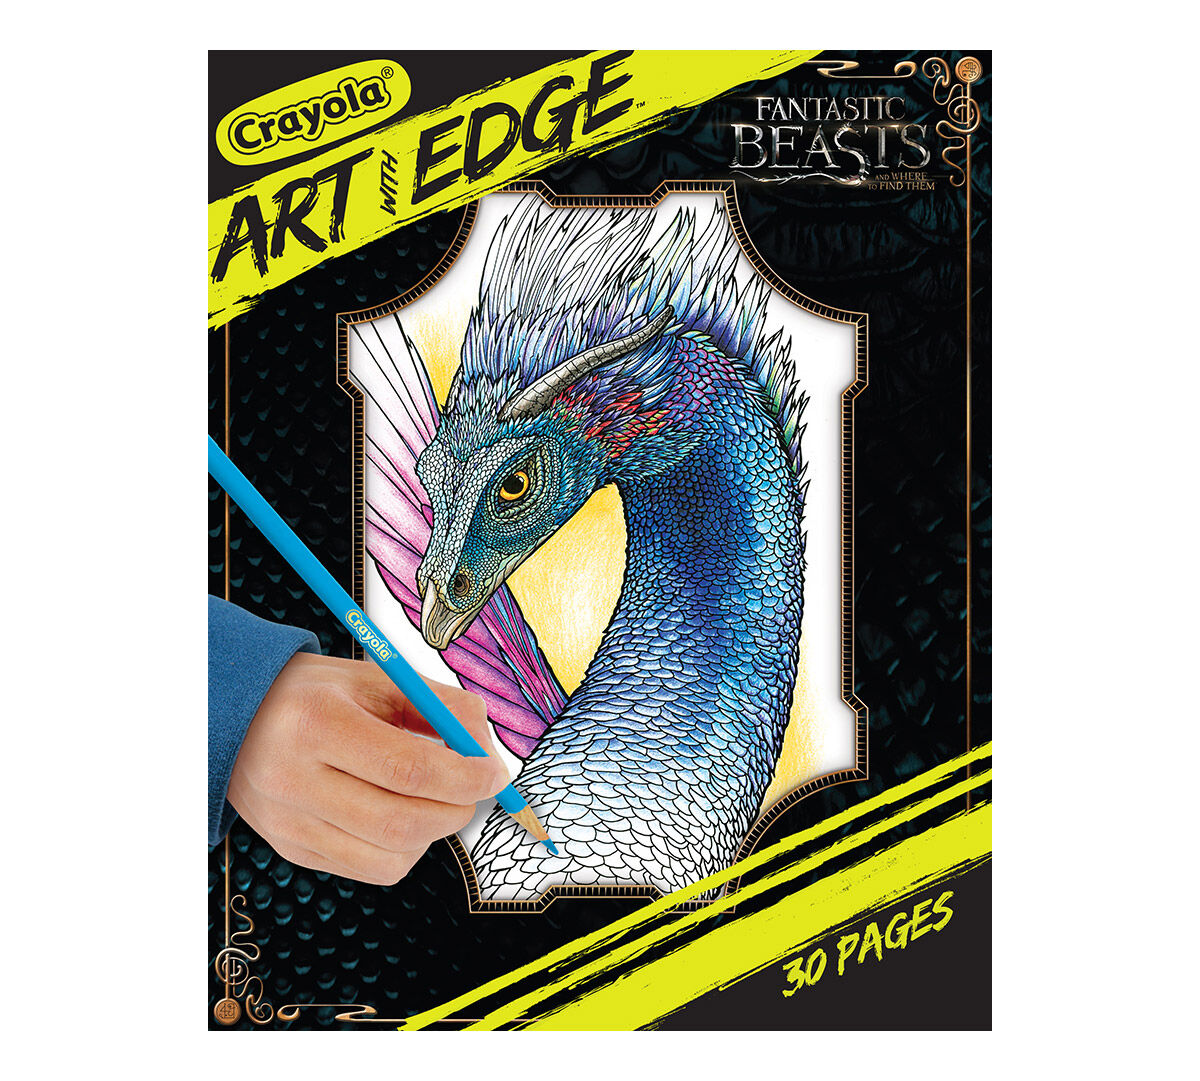 <p>Crayola Art With Edge is a line of wild, wacky, or whimsical coloring page designs just begging for your creative skills to bring them to life! This pack contains magical coloring experiences from Fantastic Beasts, a story from the wizarding world of Harry Potter! Pick up Art With Edge today and start living on the edge! Includes 30 enchanting pages.</p>